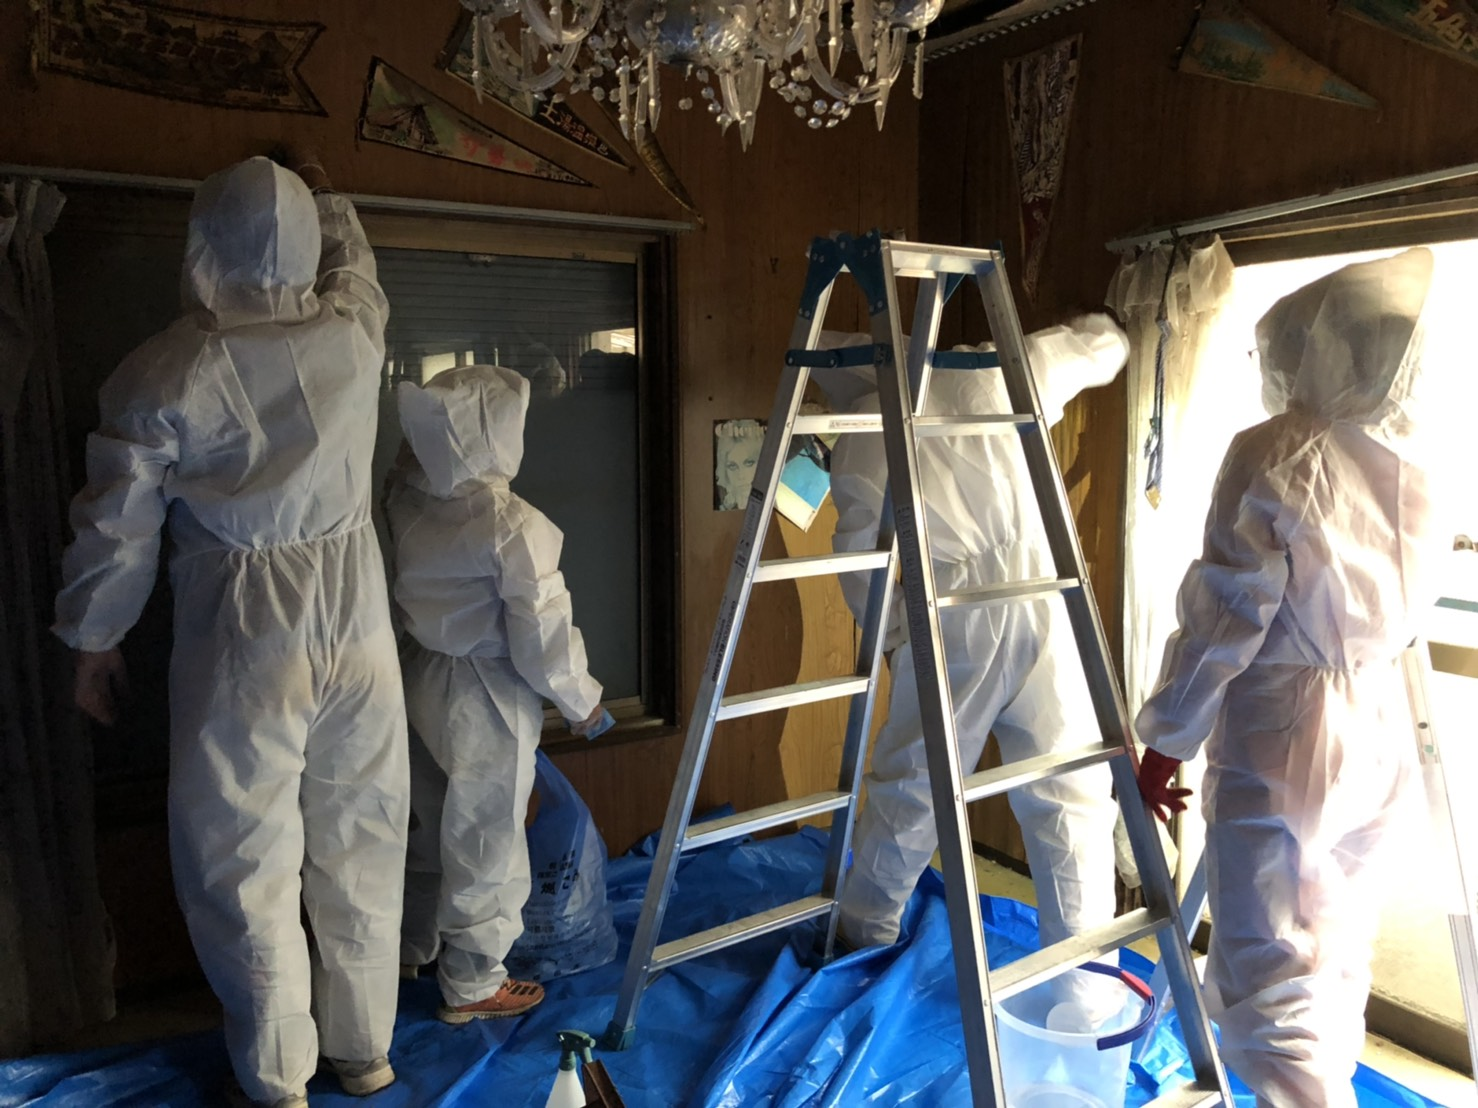 Mold_cleaning_in_a_damaged_house.jpg